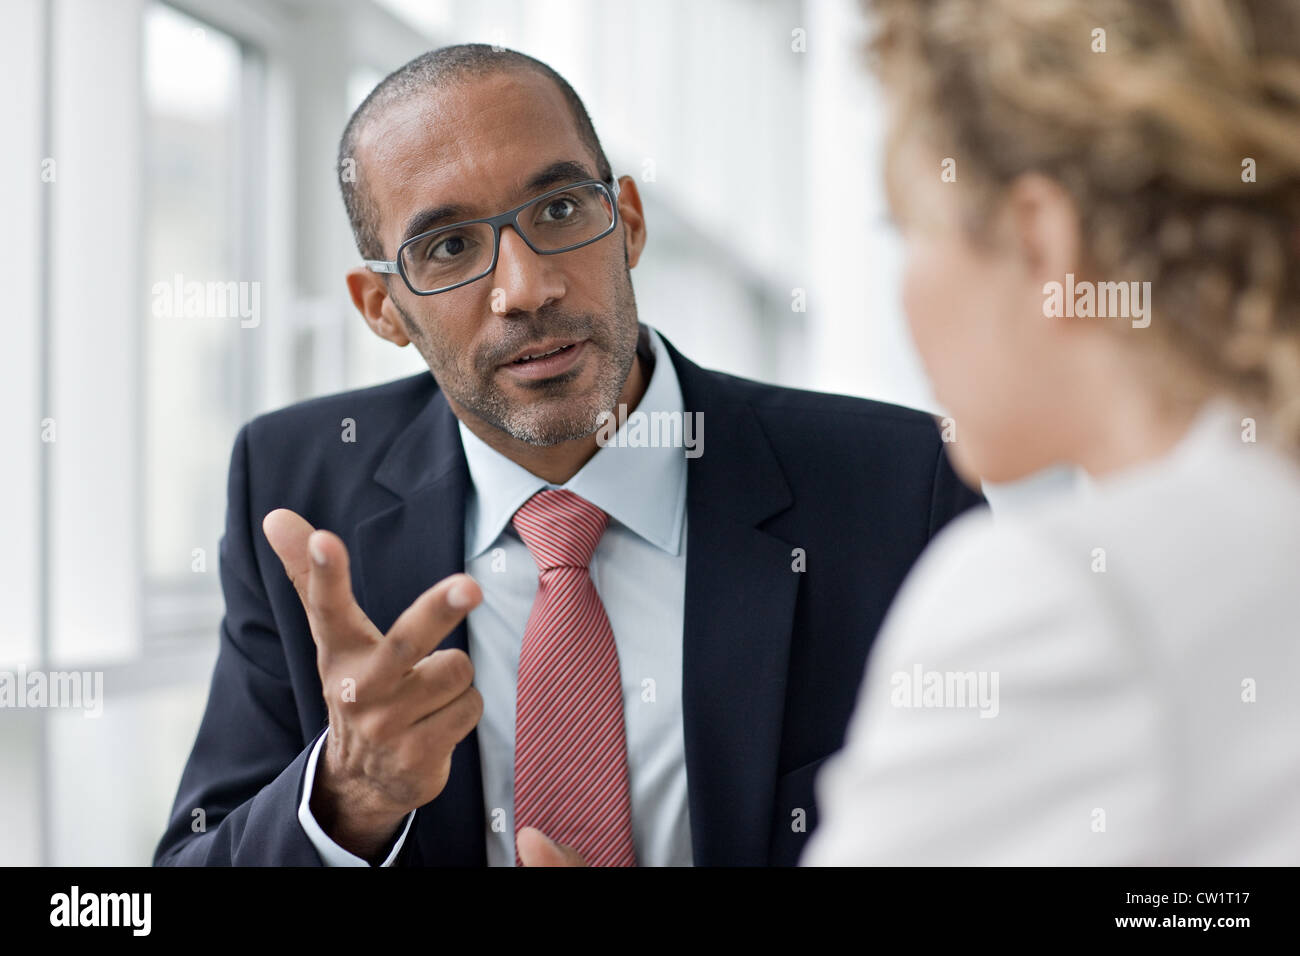 business man woman relationship discussion License free except ads and outdoor billboards - Stock Image